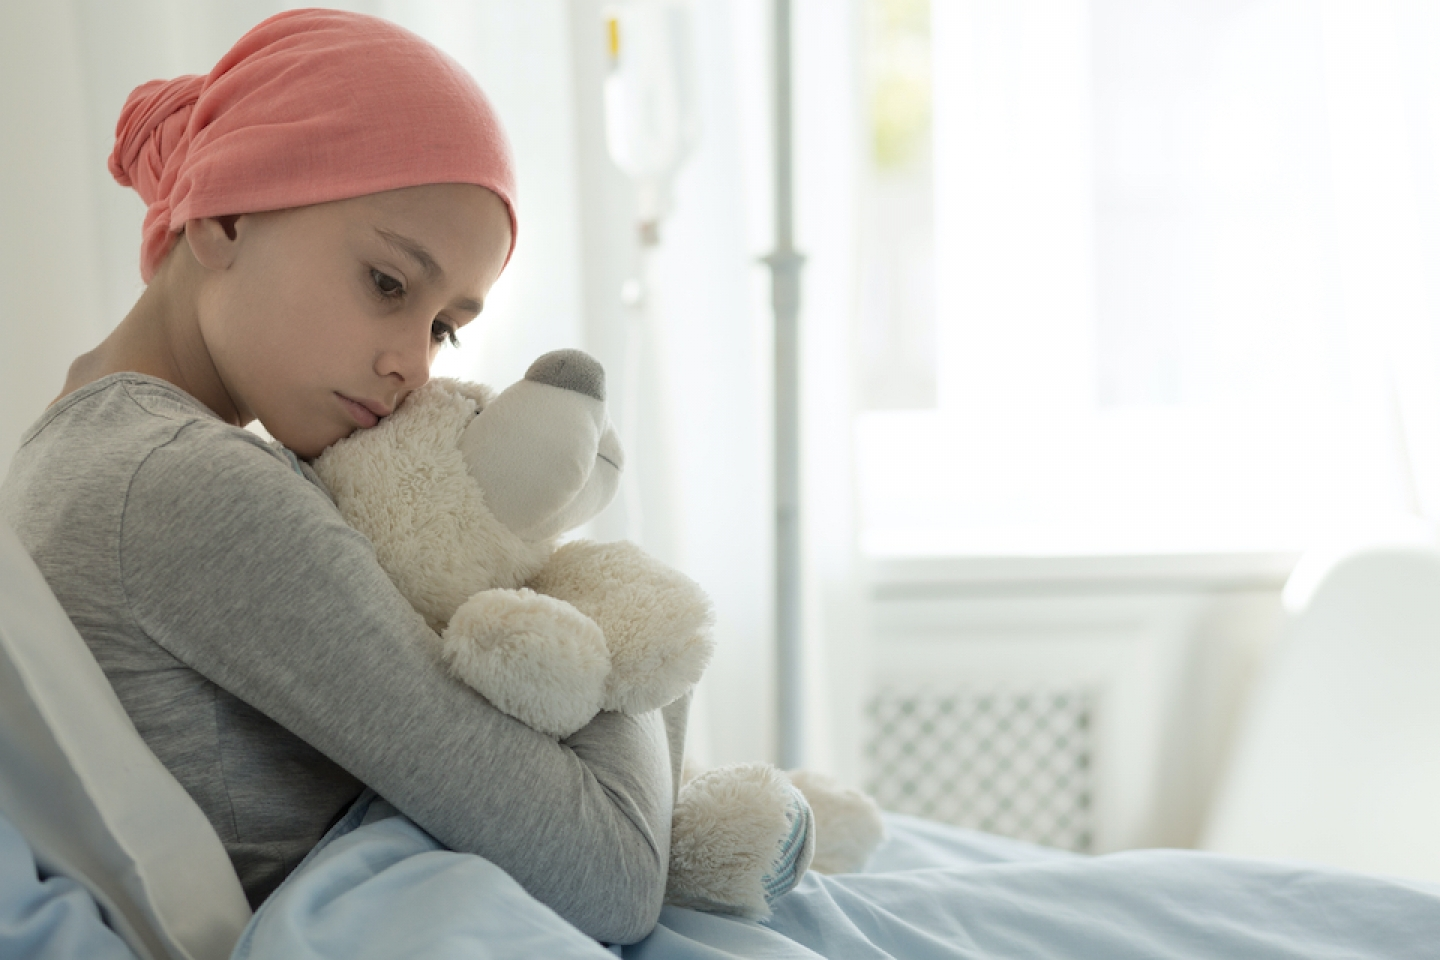 younger cancer patient